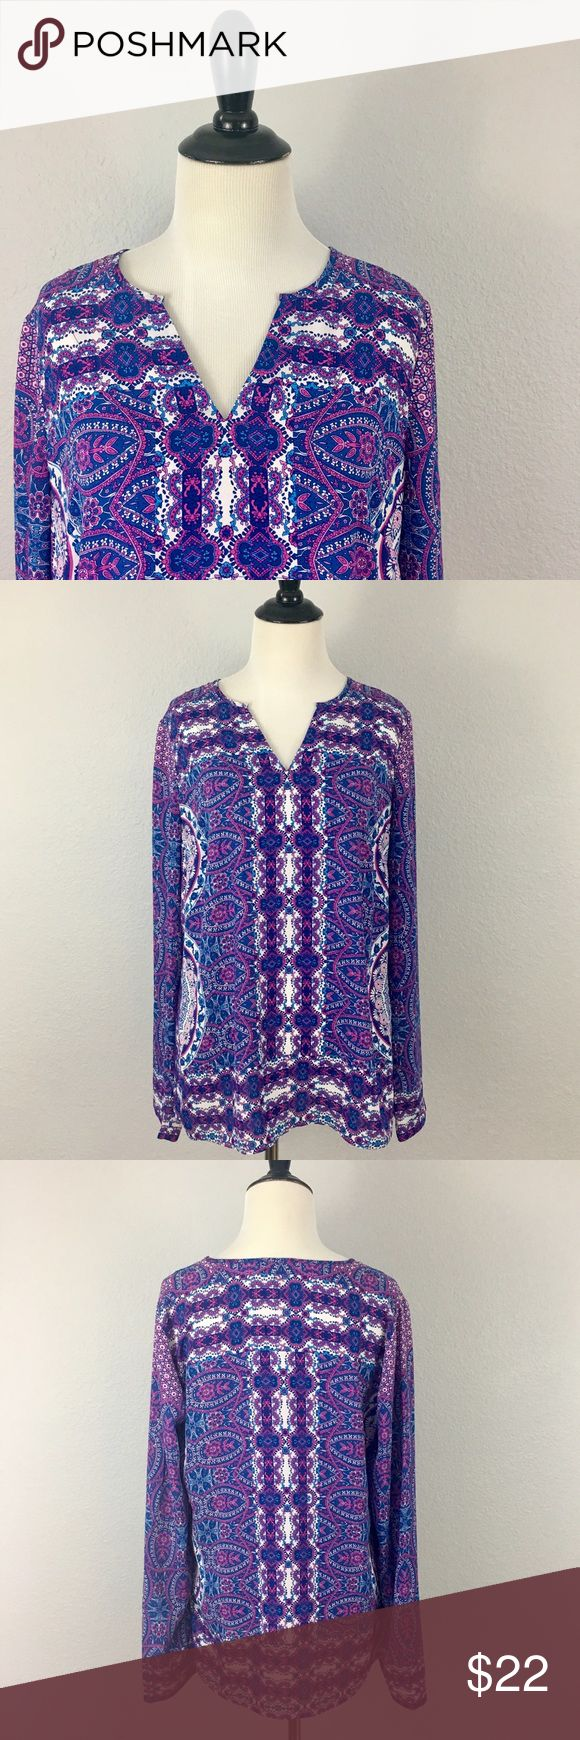 {The Limited} Purple Paisley Tunic Blouse Purple paisley print tunic blouse from The Limited. In excellent condition. Bundle and save! Fast shipping 📦 The Limited Tops Blouses